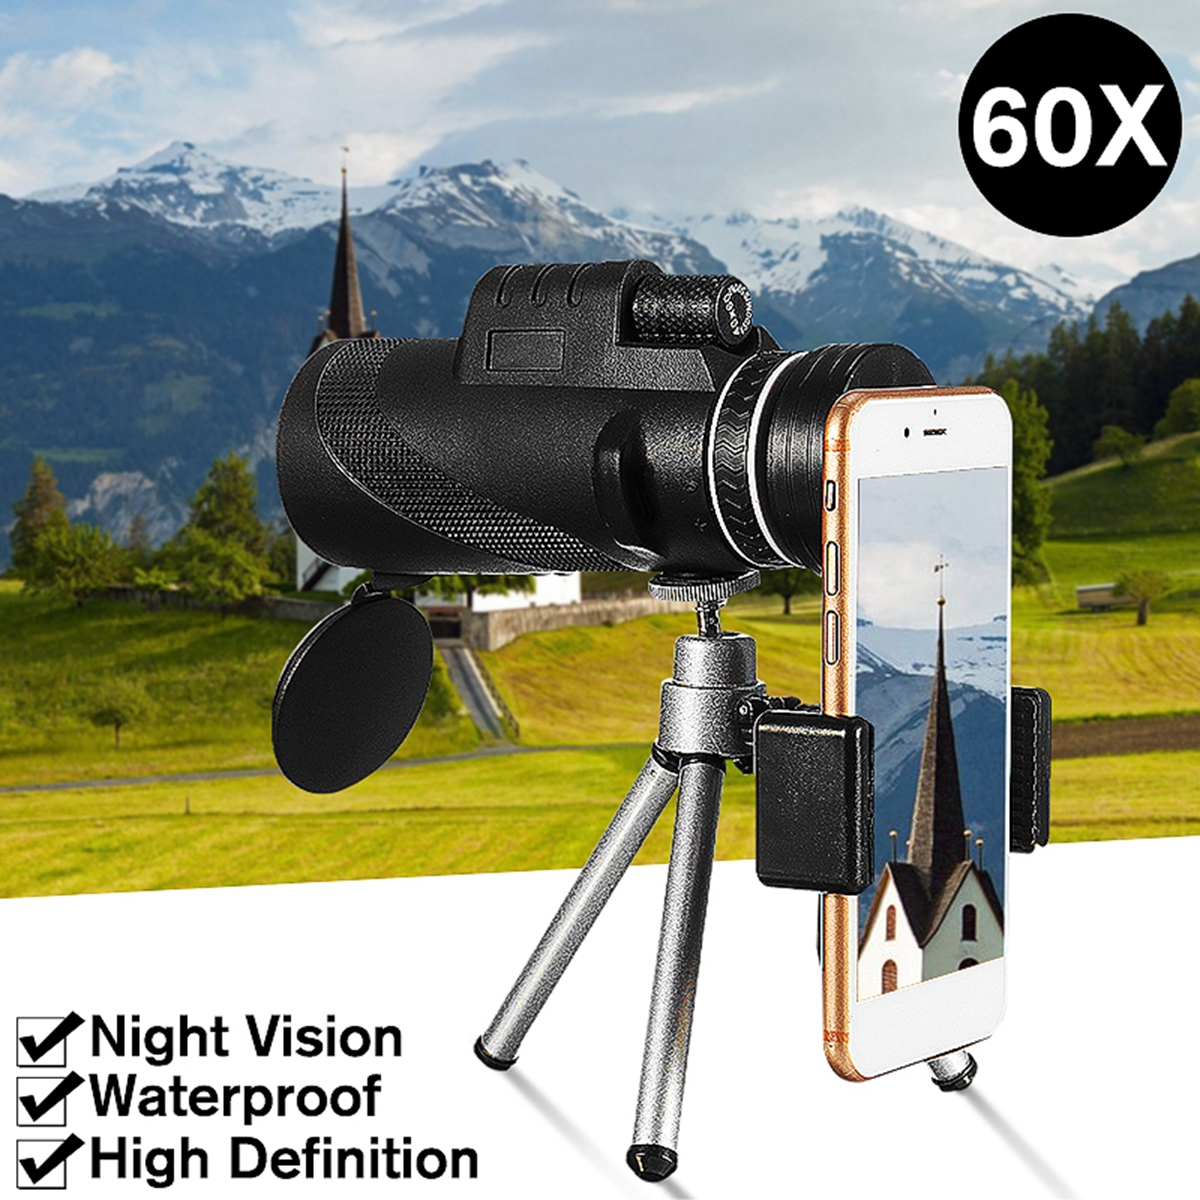 40x60 HD Waterproof Universal Phone Telescope,Focus Zoom Optical Lens Monocular Telescope+ Tripod + Mini Clip for Outdoor Camping Hunting Traveling Boating Beach (3 Patterns)